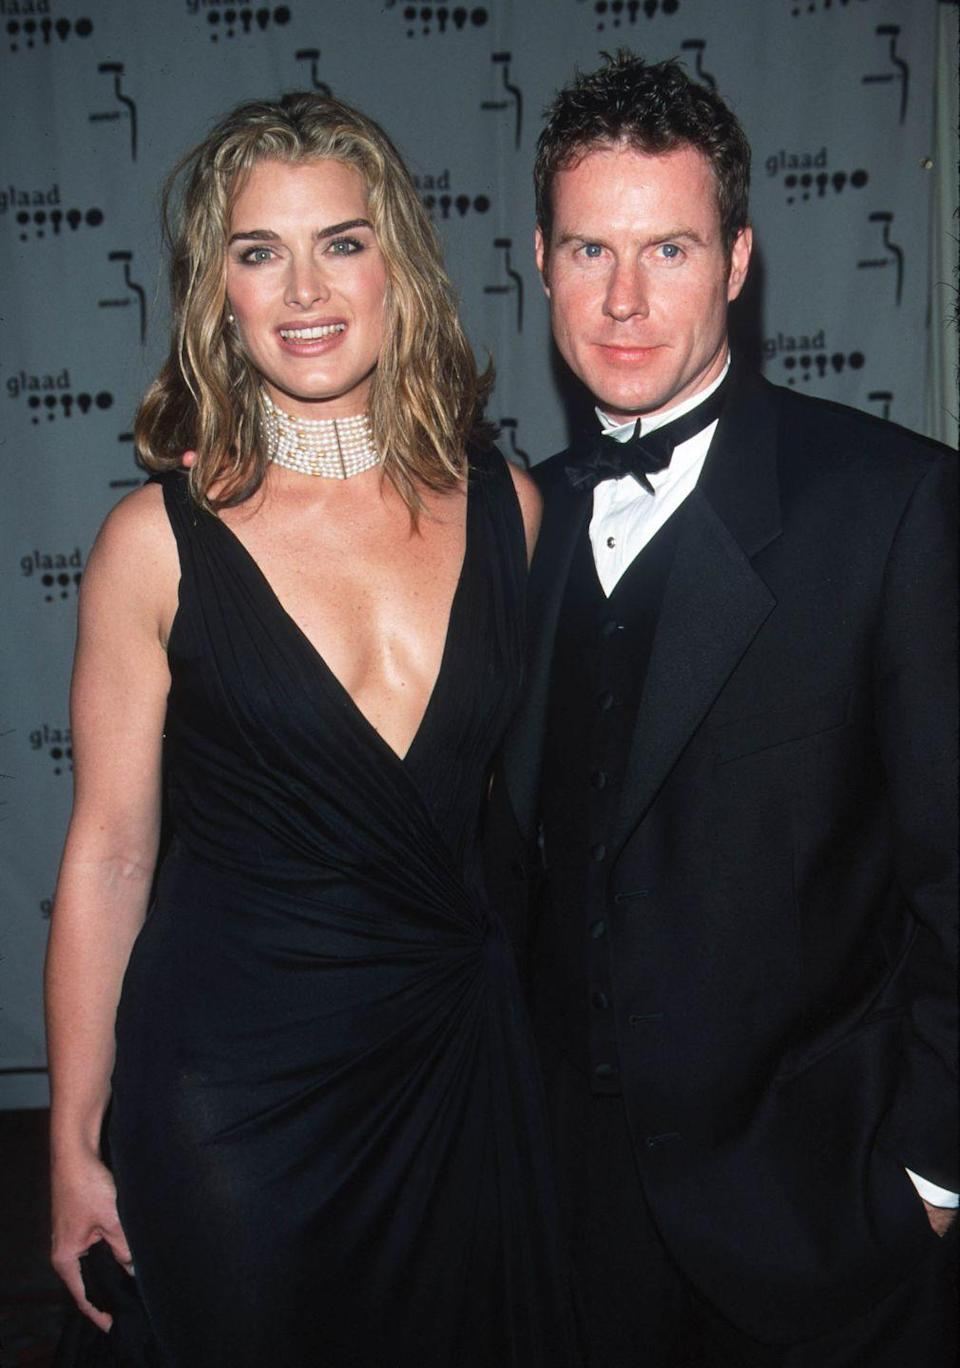 <p>Not long after splitting from Andre, Brooke started dating Chris Henchy. The two got engaged in 2000 and were married a year later, and they're still going strong today. The pair also have two daughters together.<br></p>